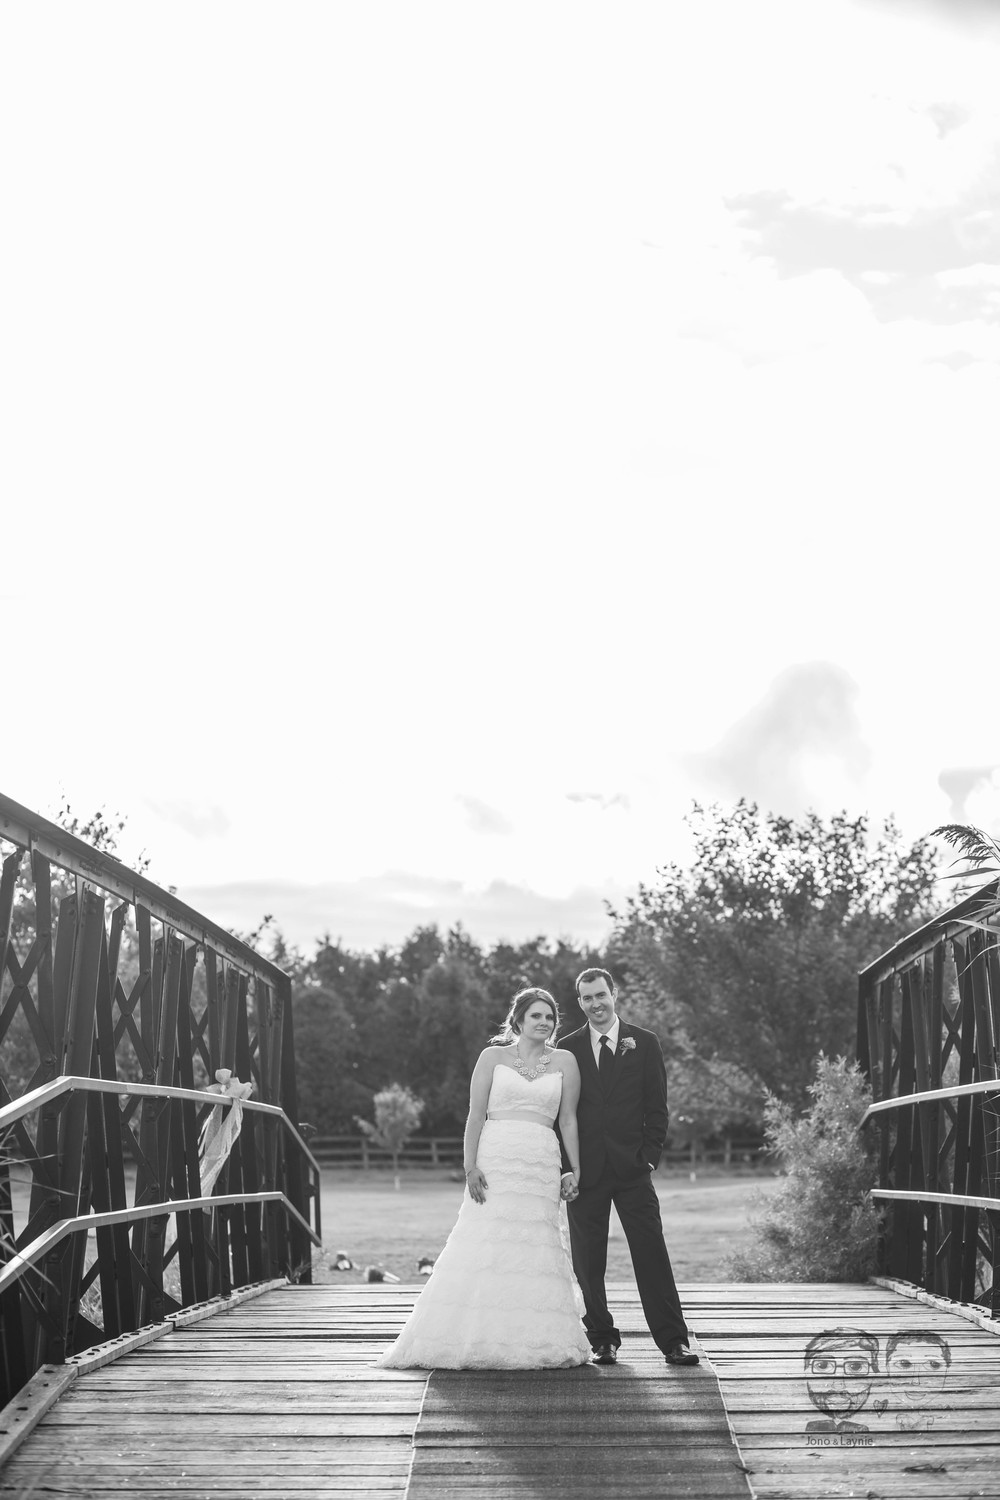 110London Photographers-Jono & Laynie Co.jpg